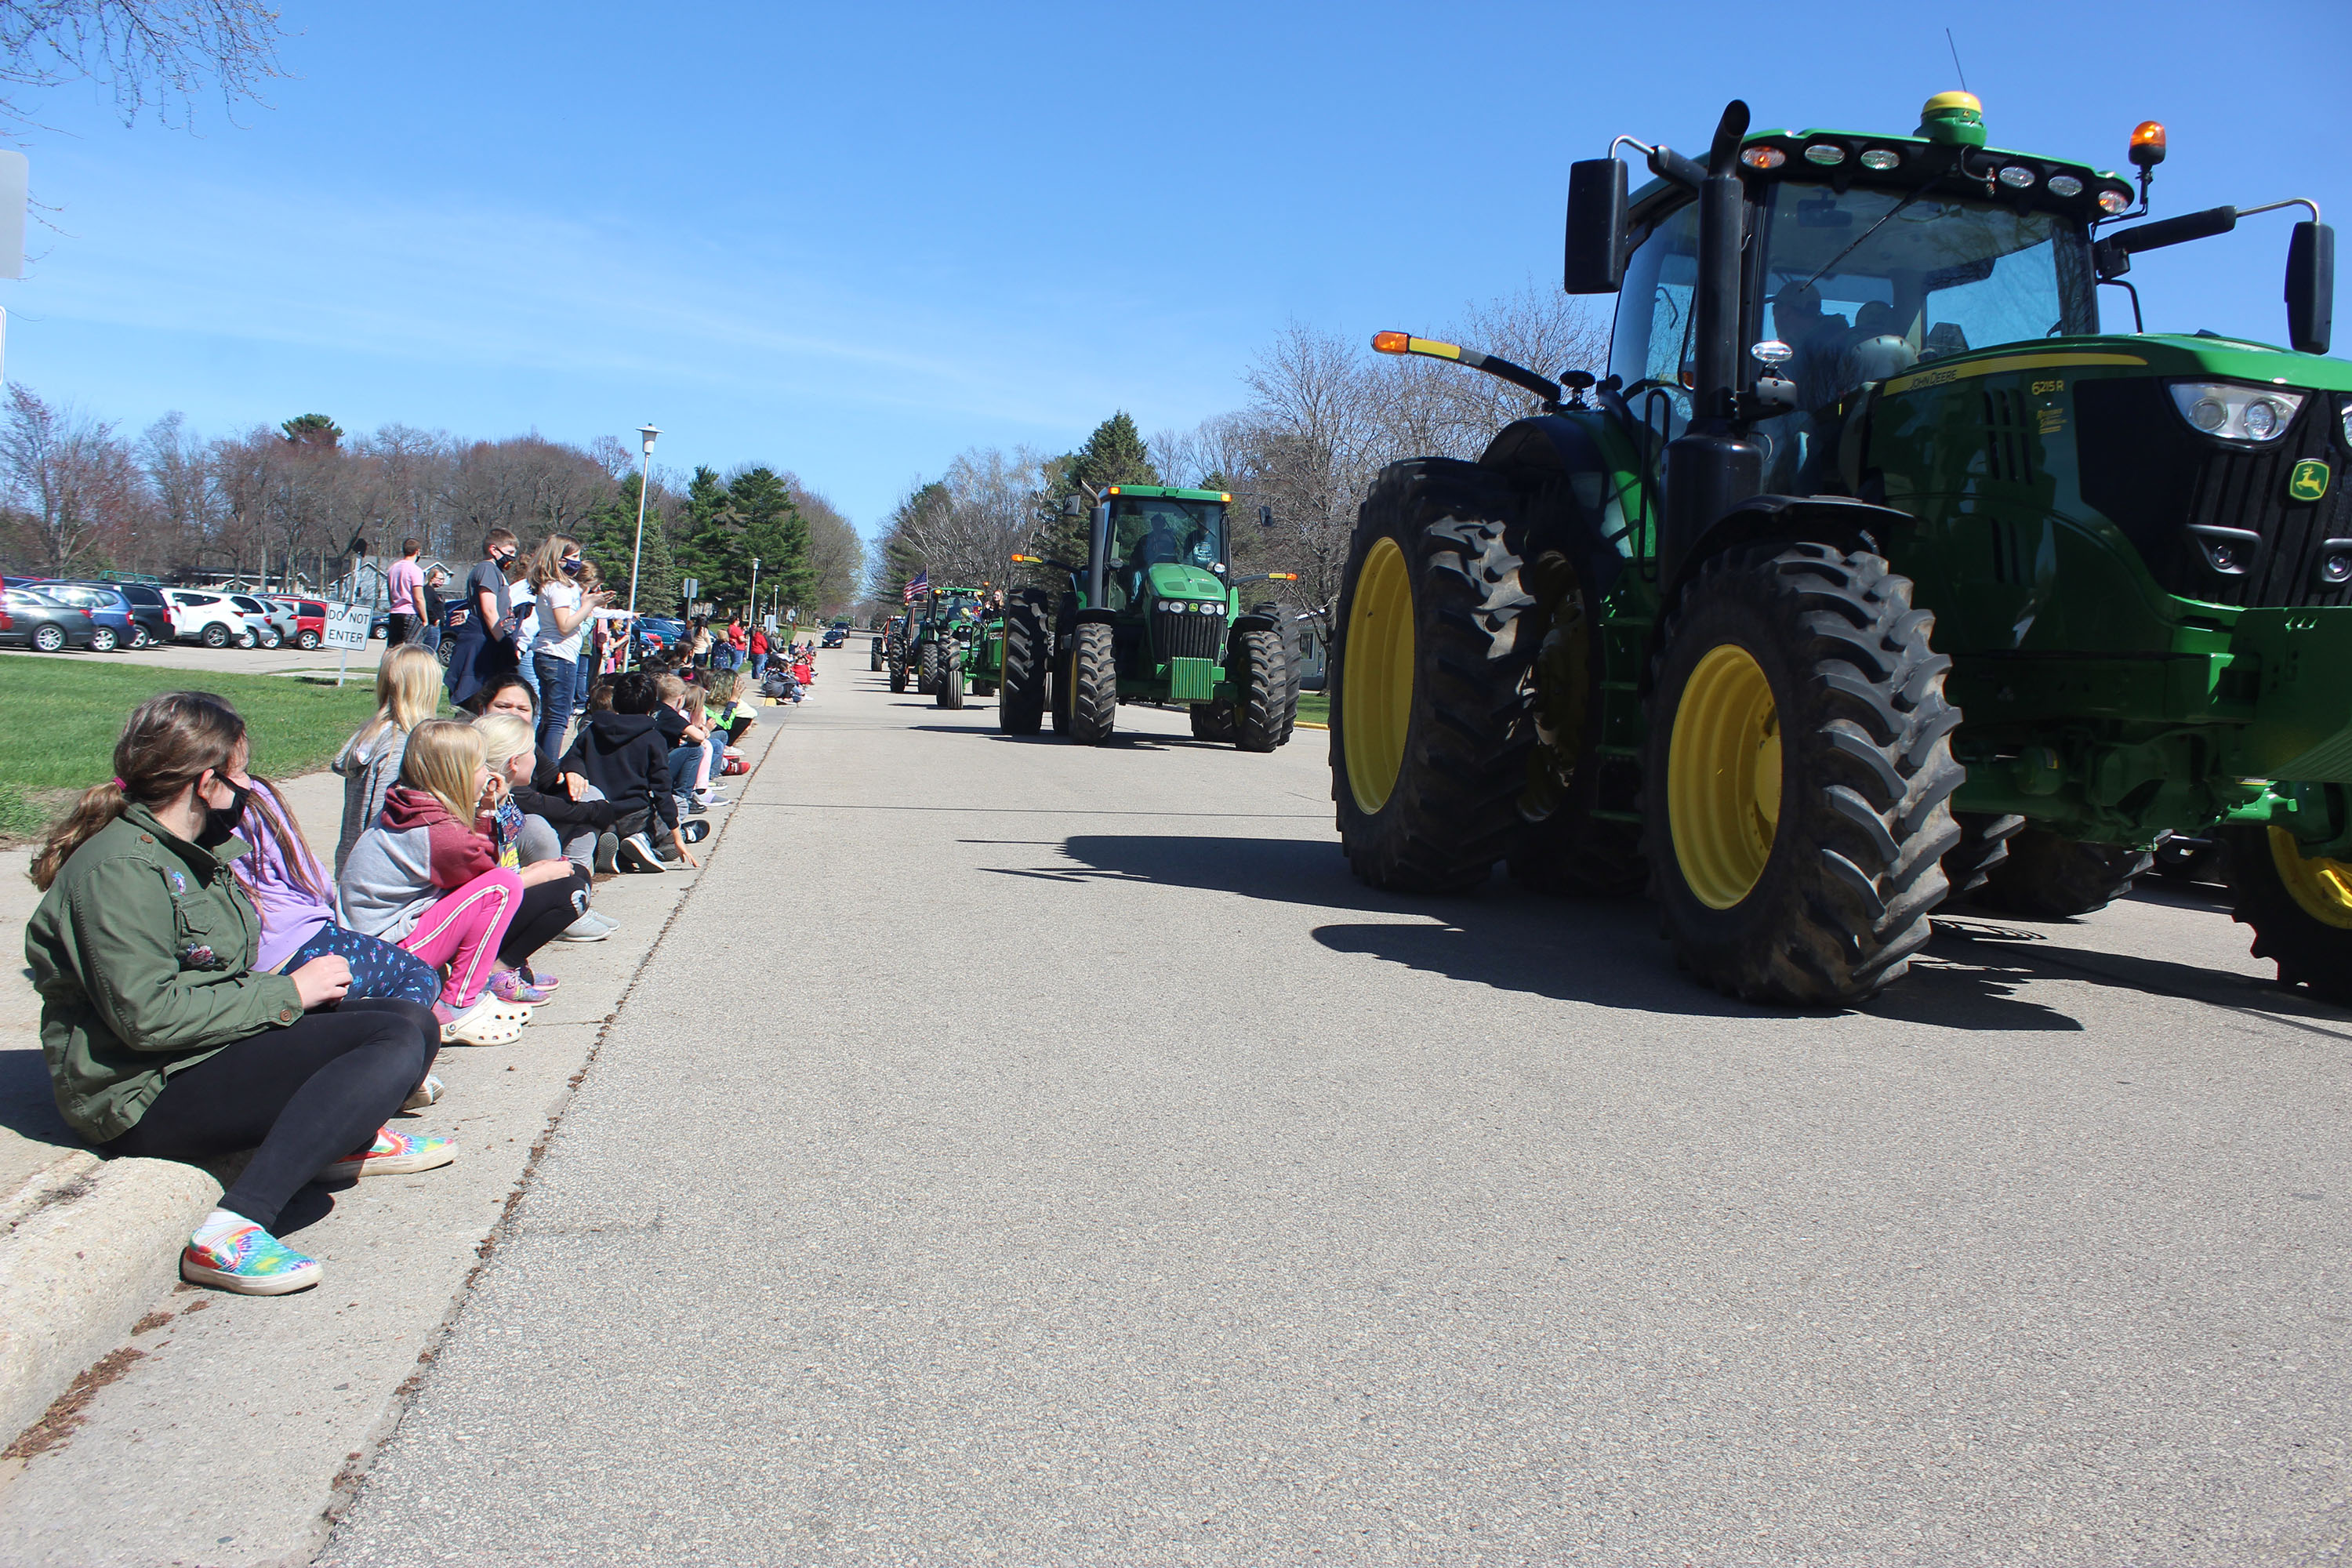 Shawano FFA members roll along in front of Olga Brener Intermediate School in a parade on April 16 as students wave and cheer them on. The visit capped off the FFA's Drive Your Tractor to School Day.<br />(Lee Pulaski | NEW Media)